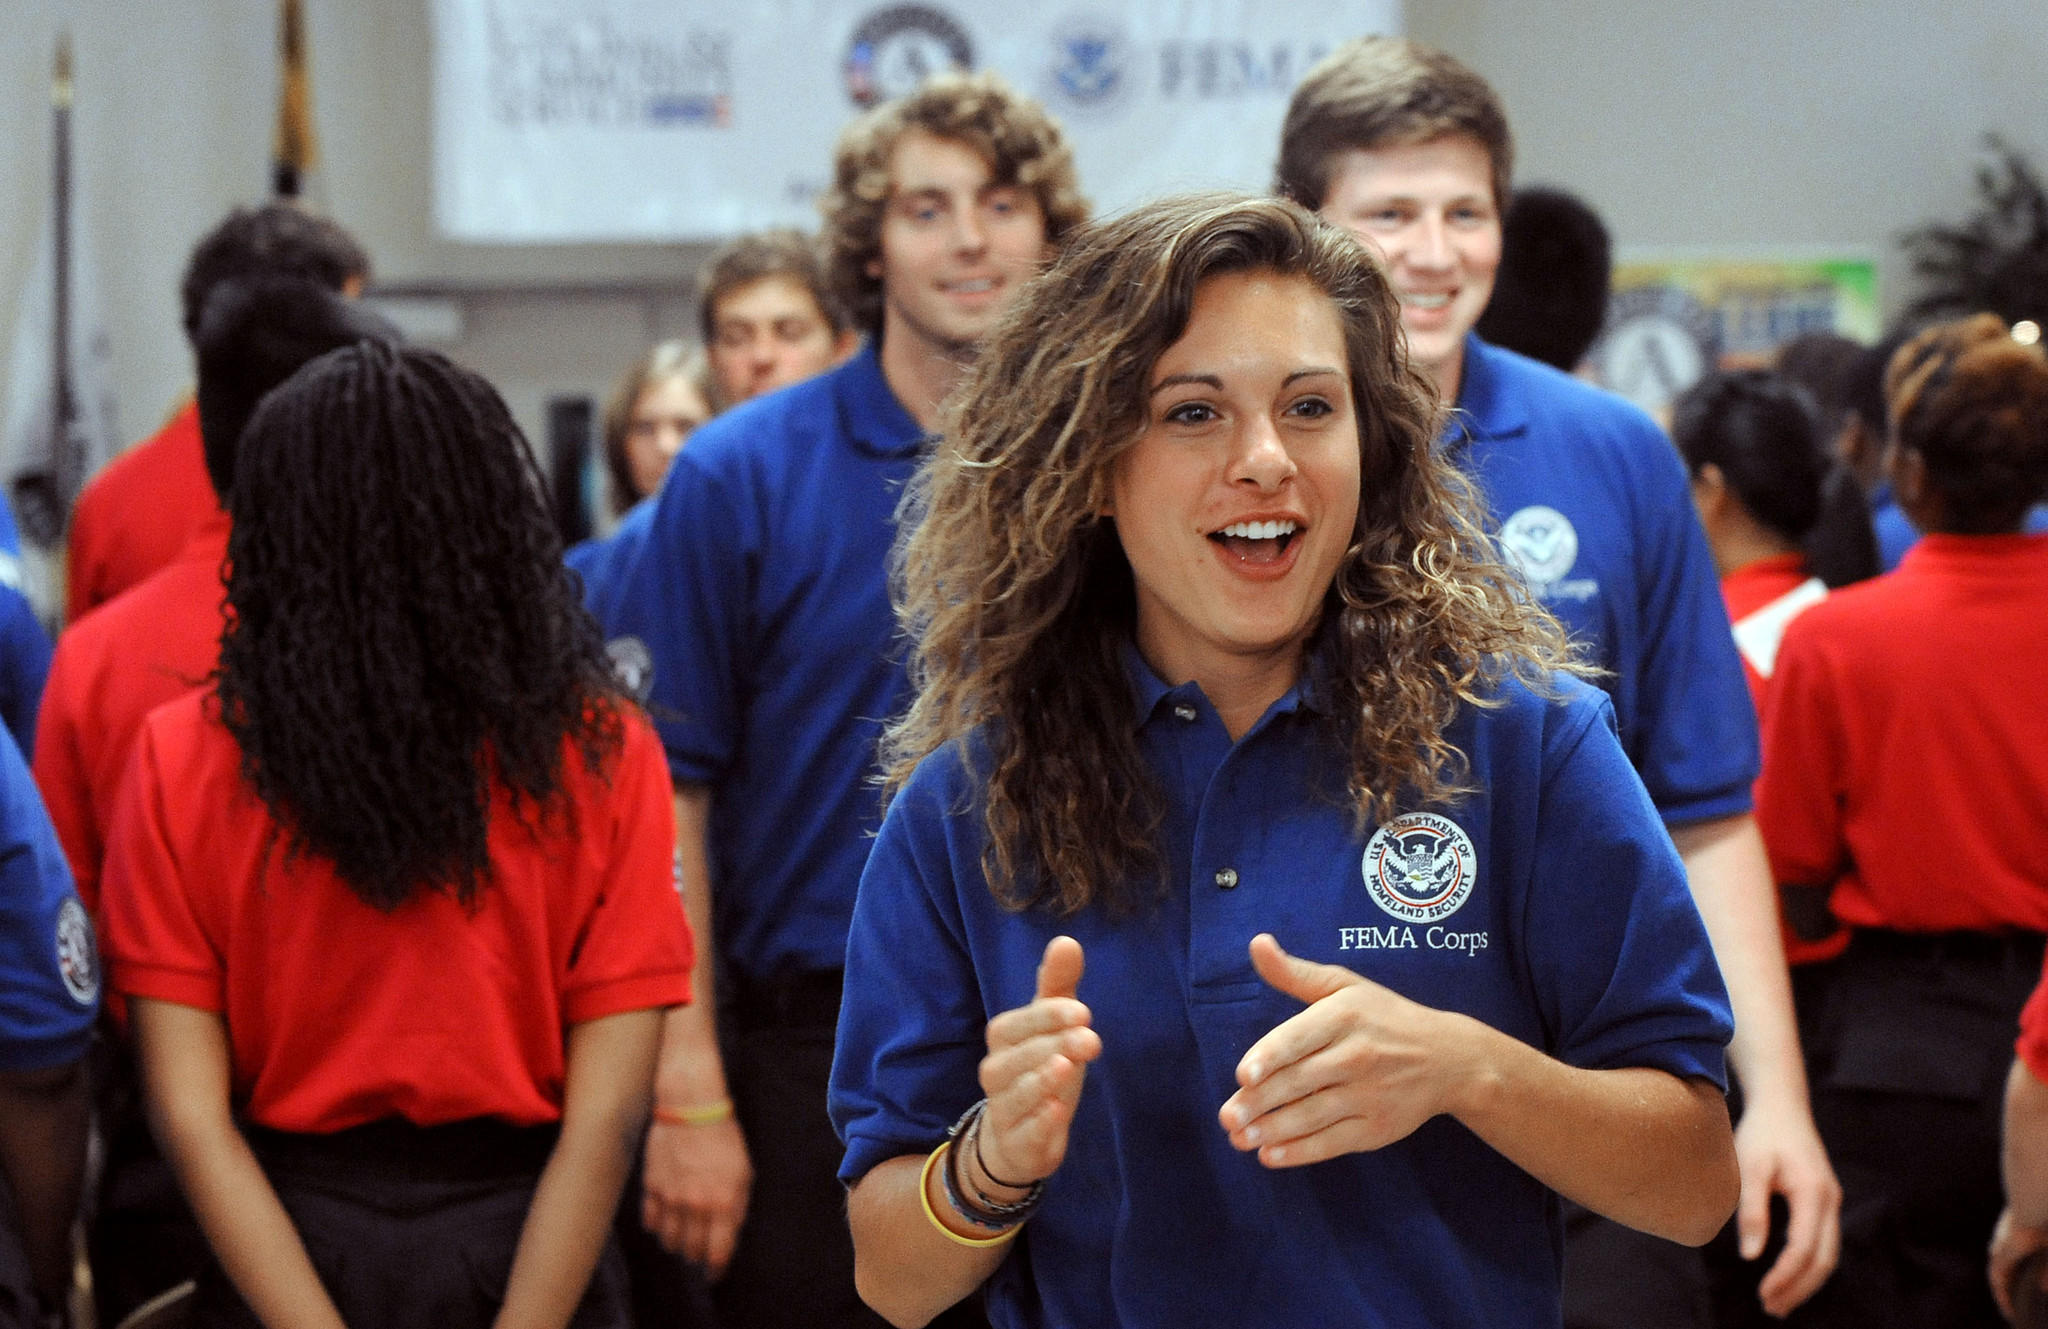 new americorps campus opens in baltimore baltimore sun